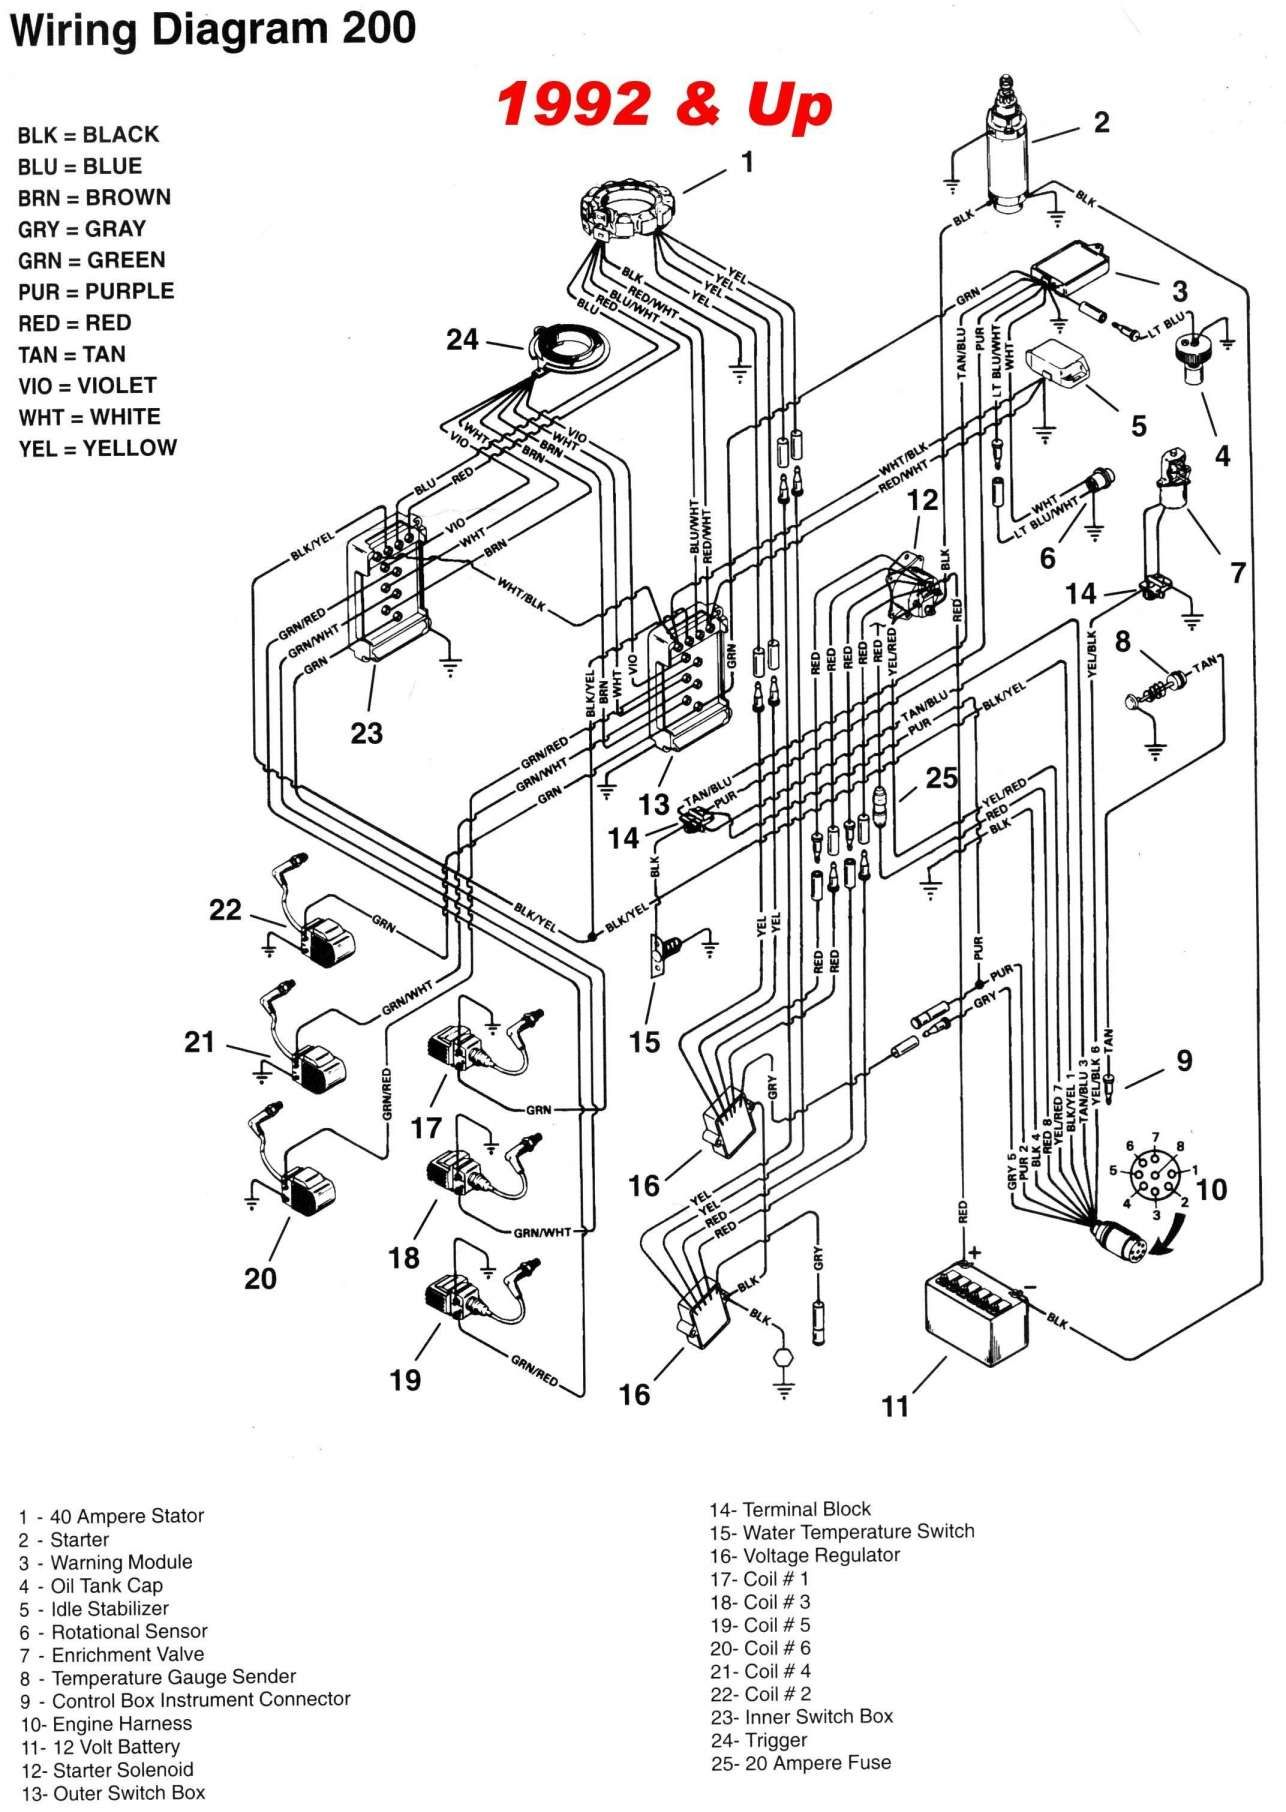 Mercruiser 140 Engine Wiring Diagram And Civic Ignition Wiring Diagram Diagrams Instructions Mercury Outboard Diagram Mercury